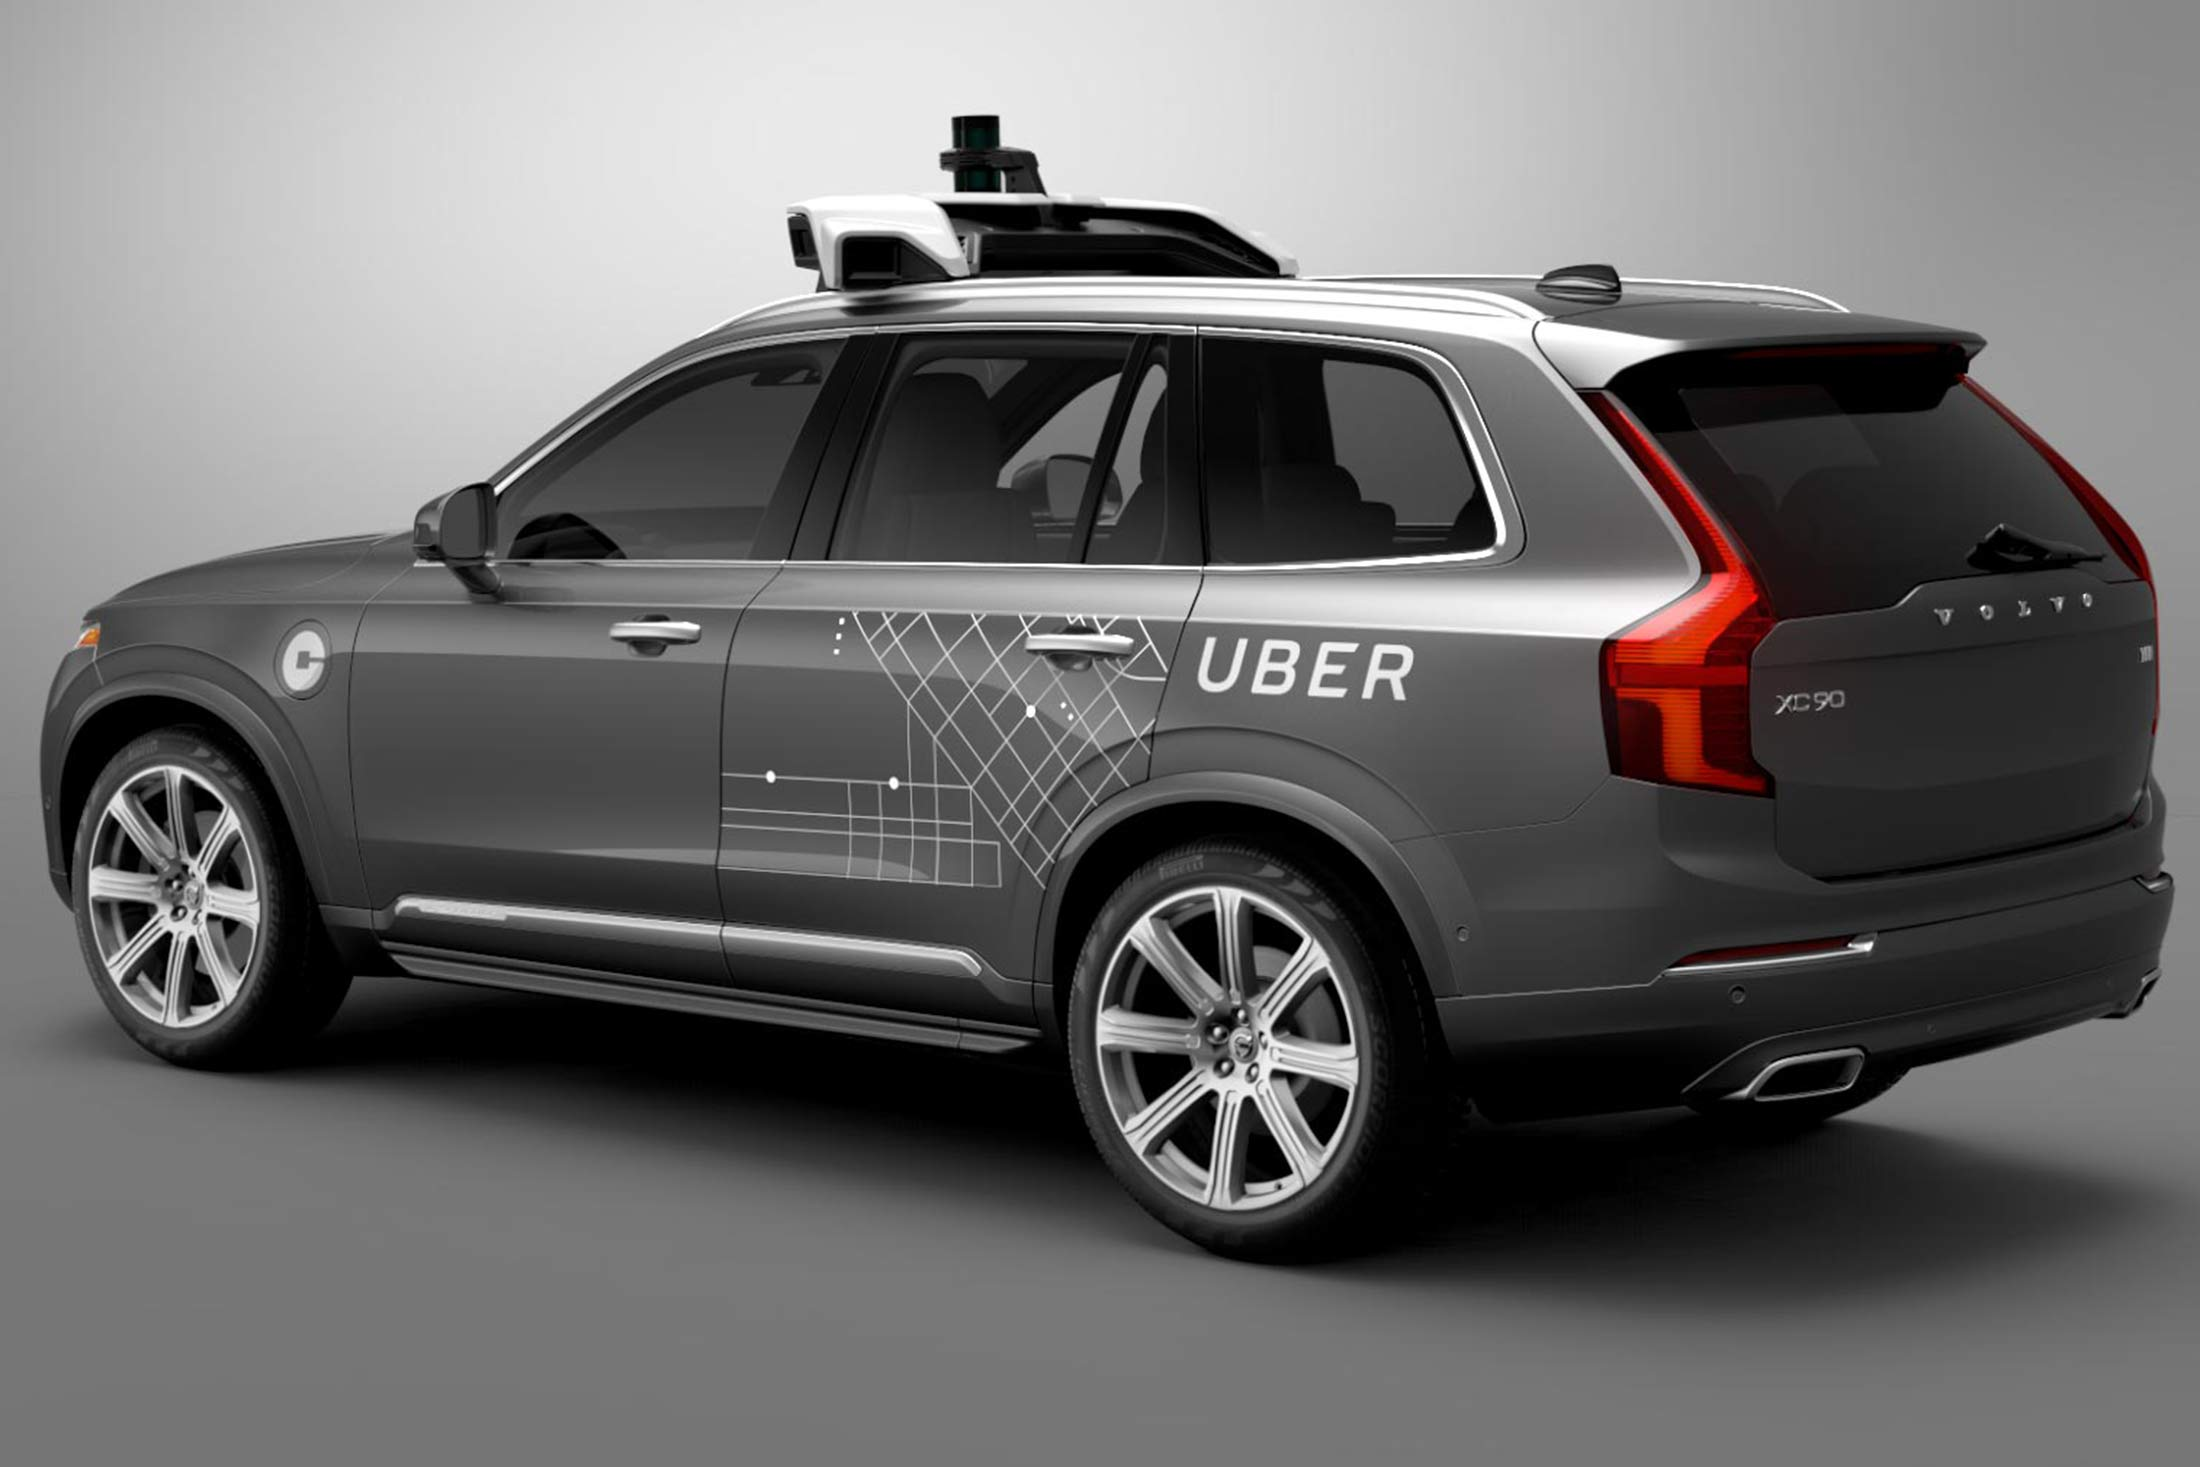 uber-self-driving-car-volvo